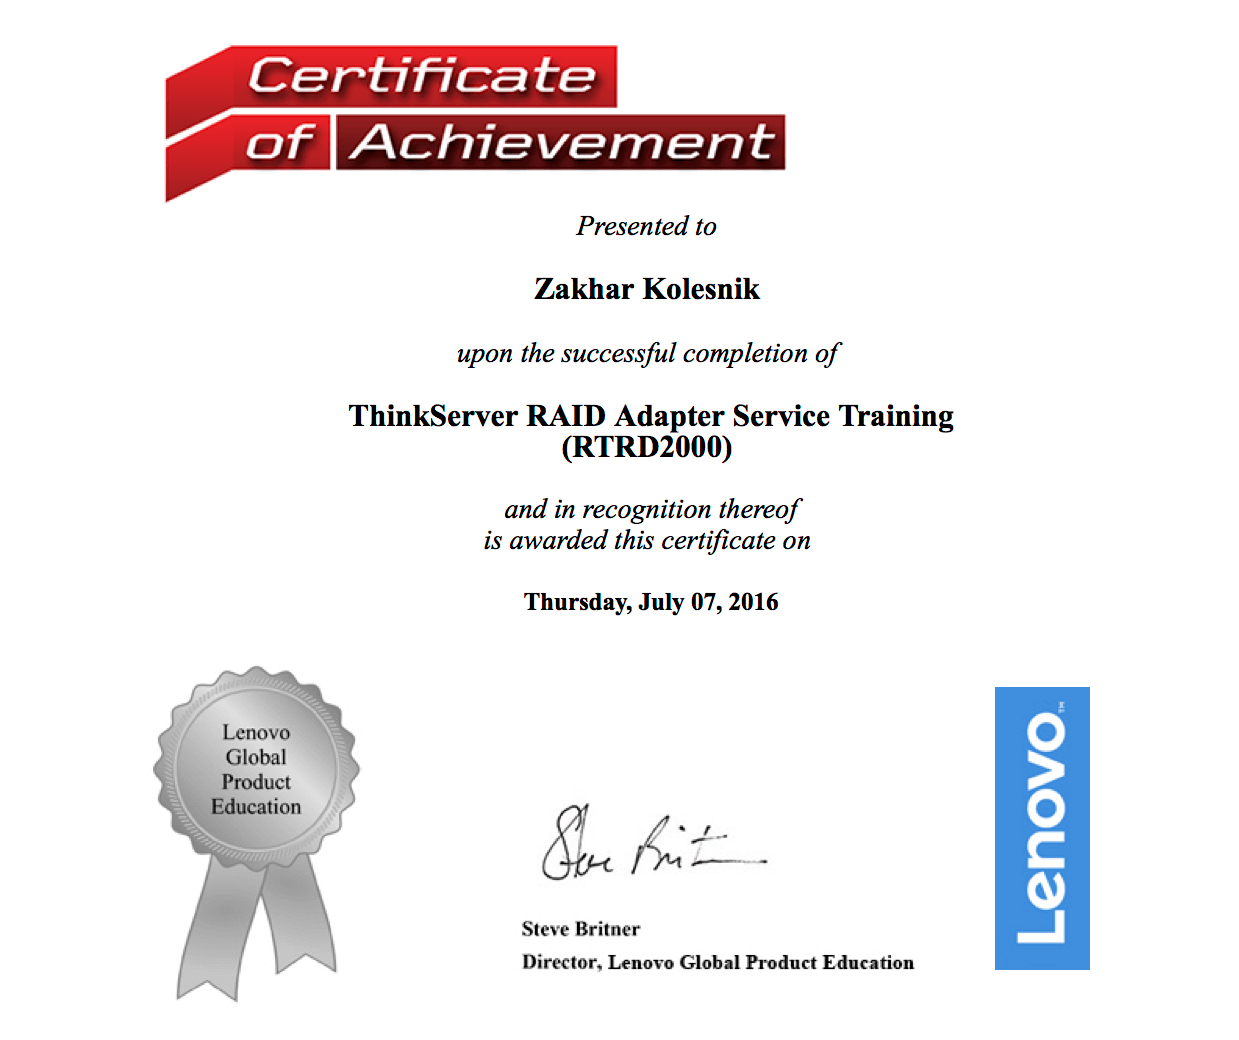 Lenovo: ThinkServer RAID AdapterService Training (RTRD2000)